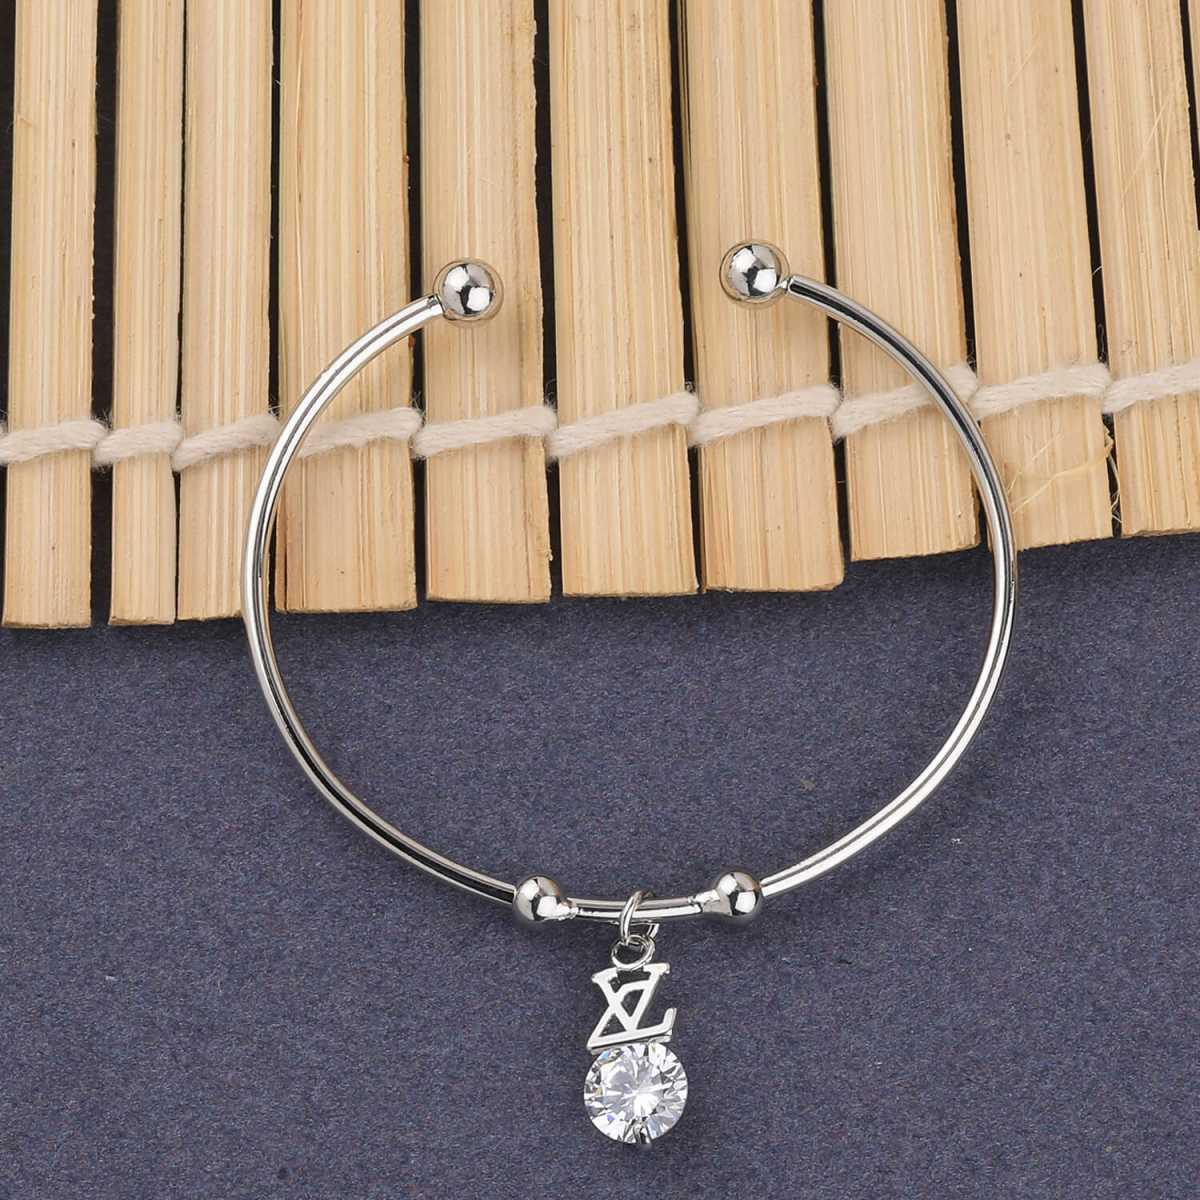 SILVER SHINE Attractive Party Wear Adjustable Bracelet With Diamond For Women Girls